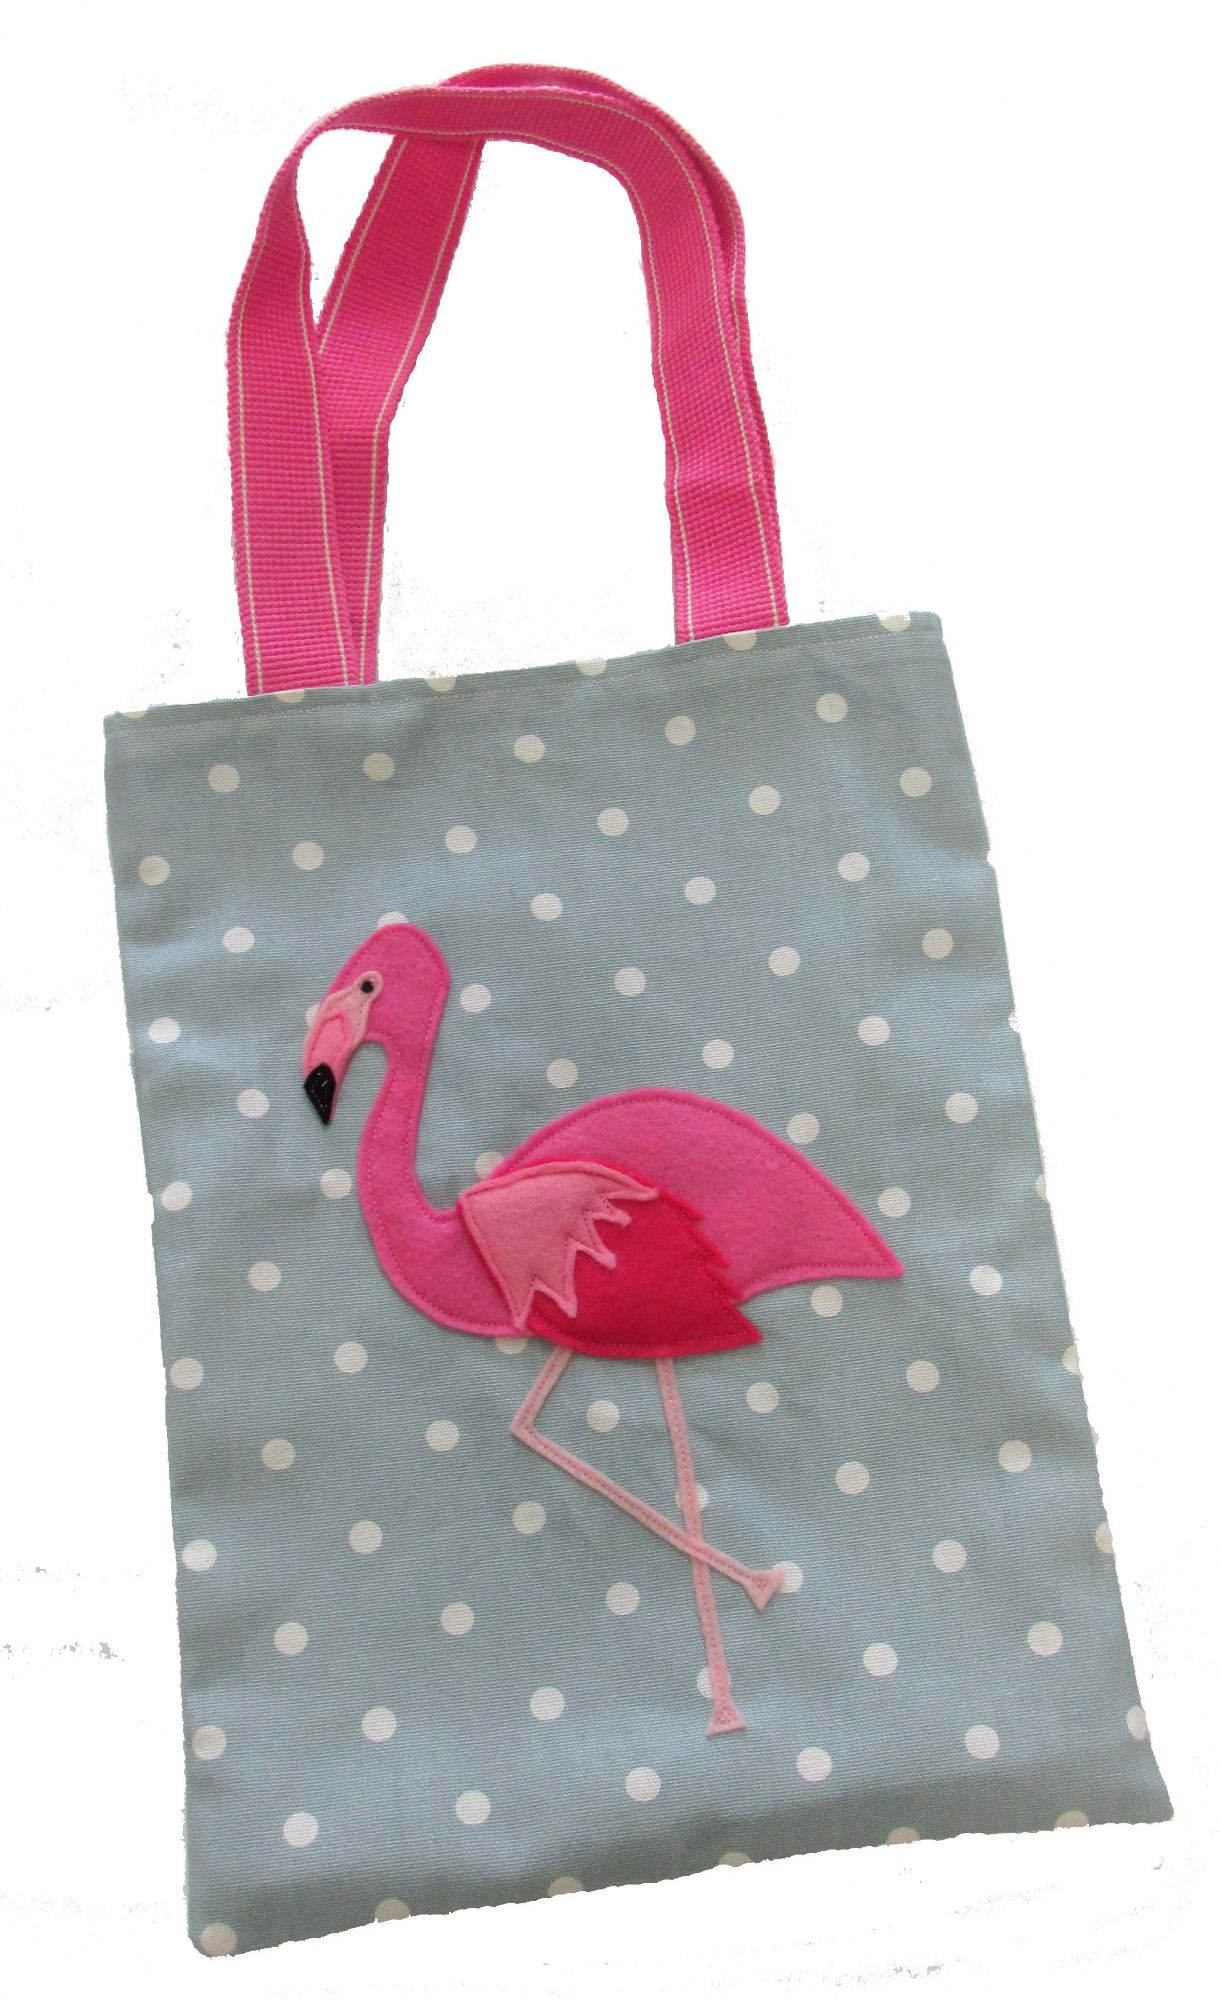 Sew Your Own Flamingo Tote Bag